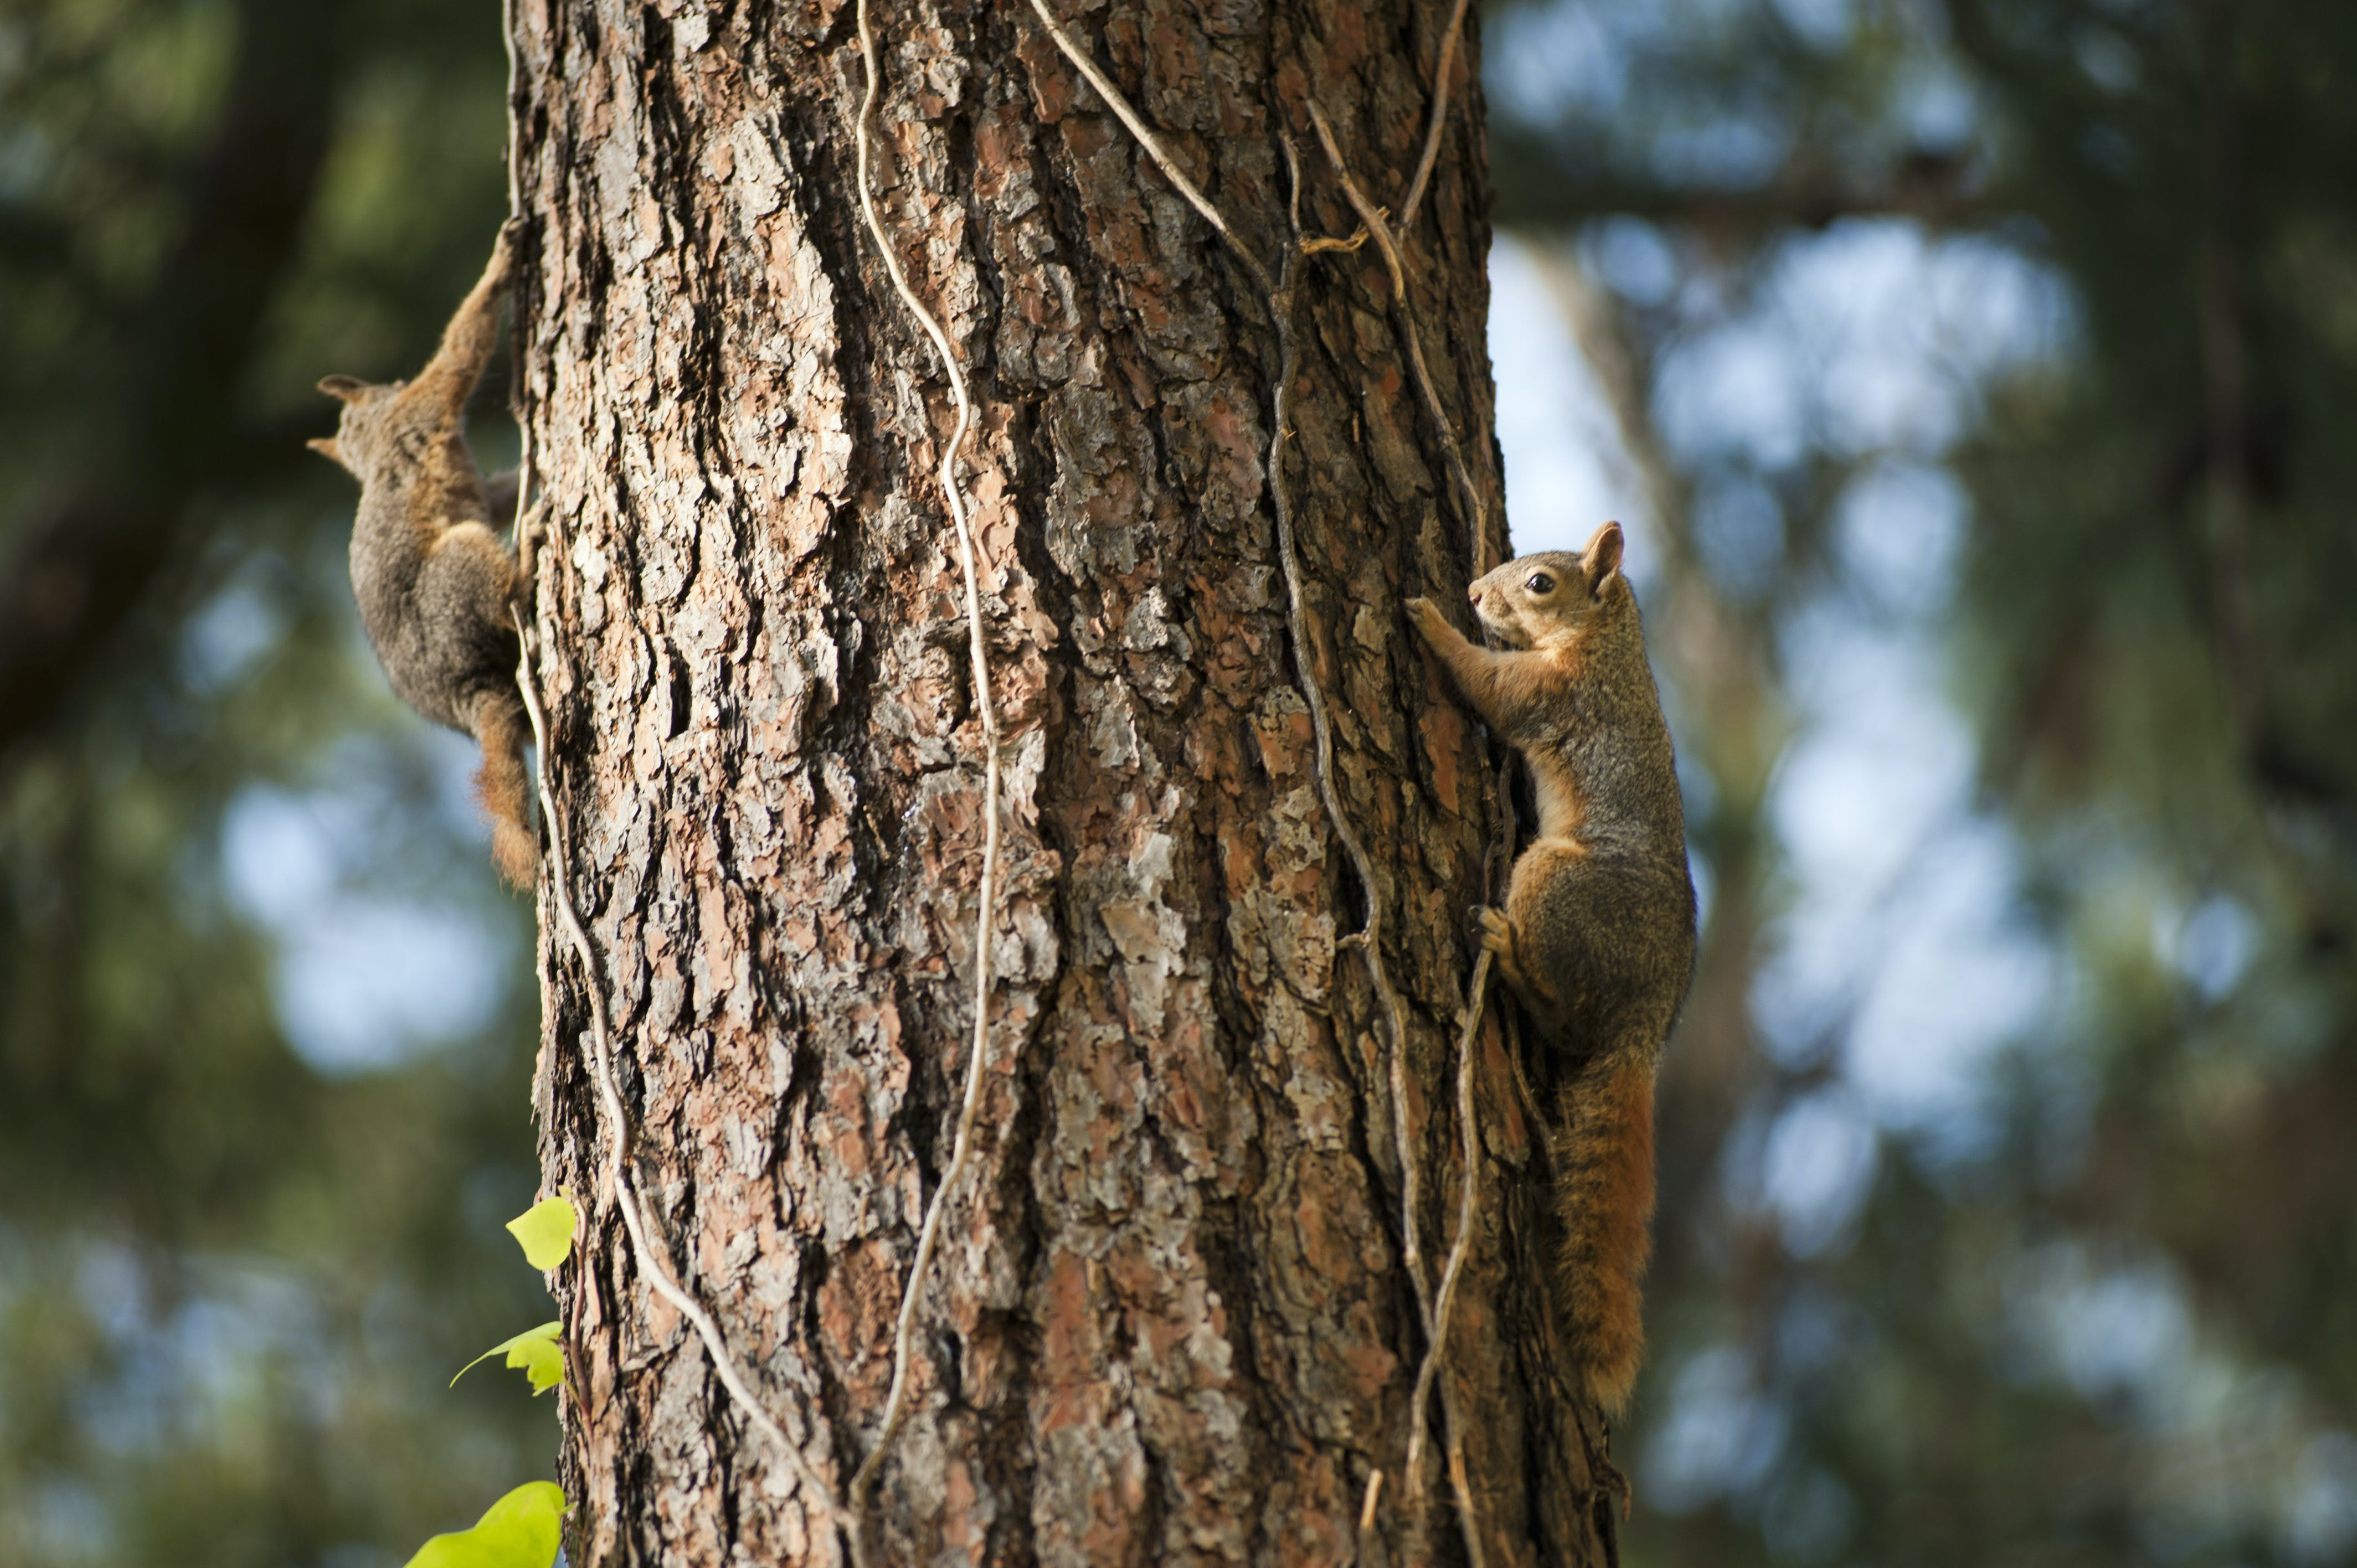 Two Squirrels on Tree Trunk